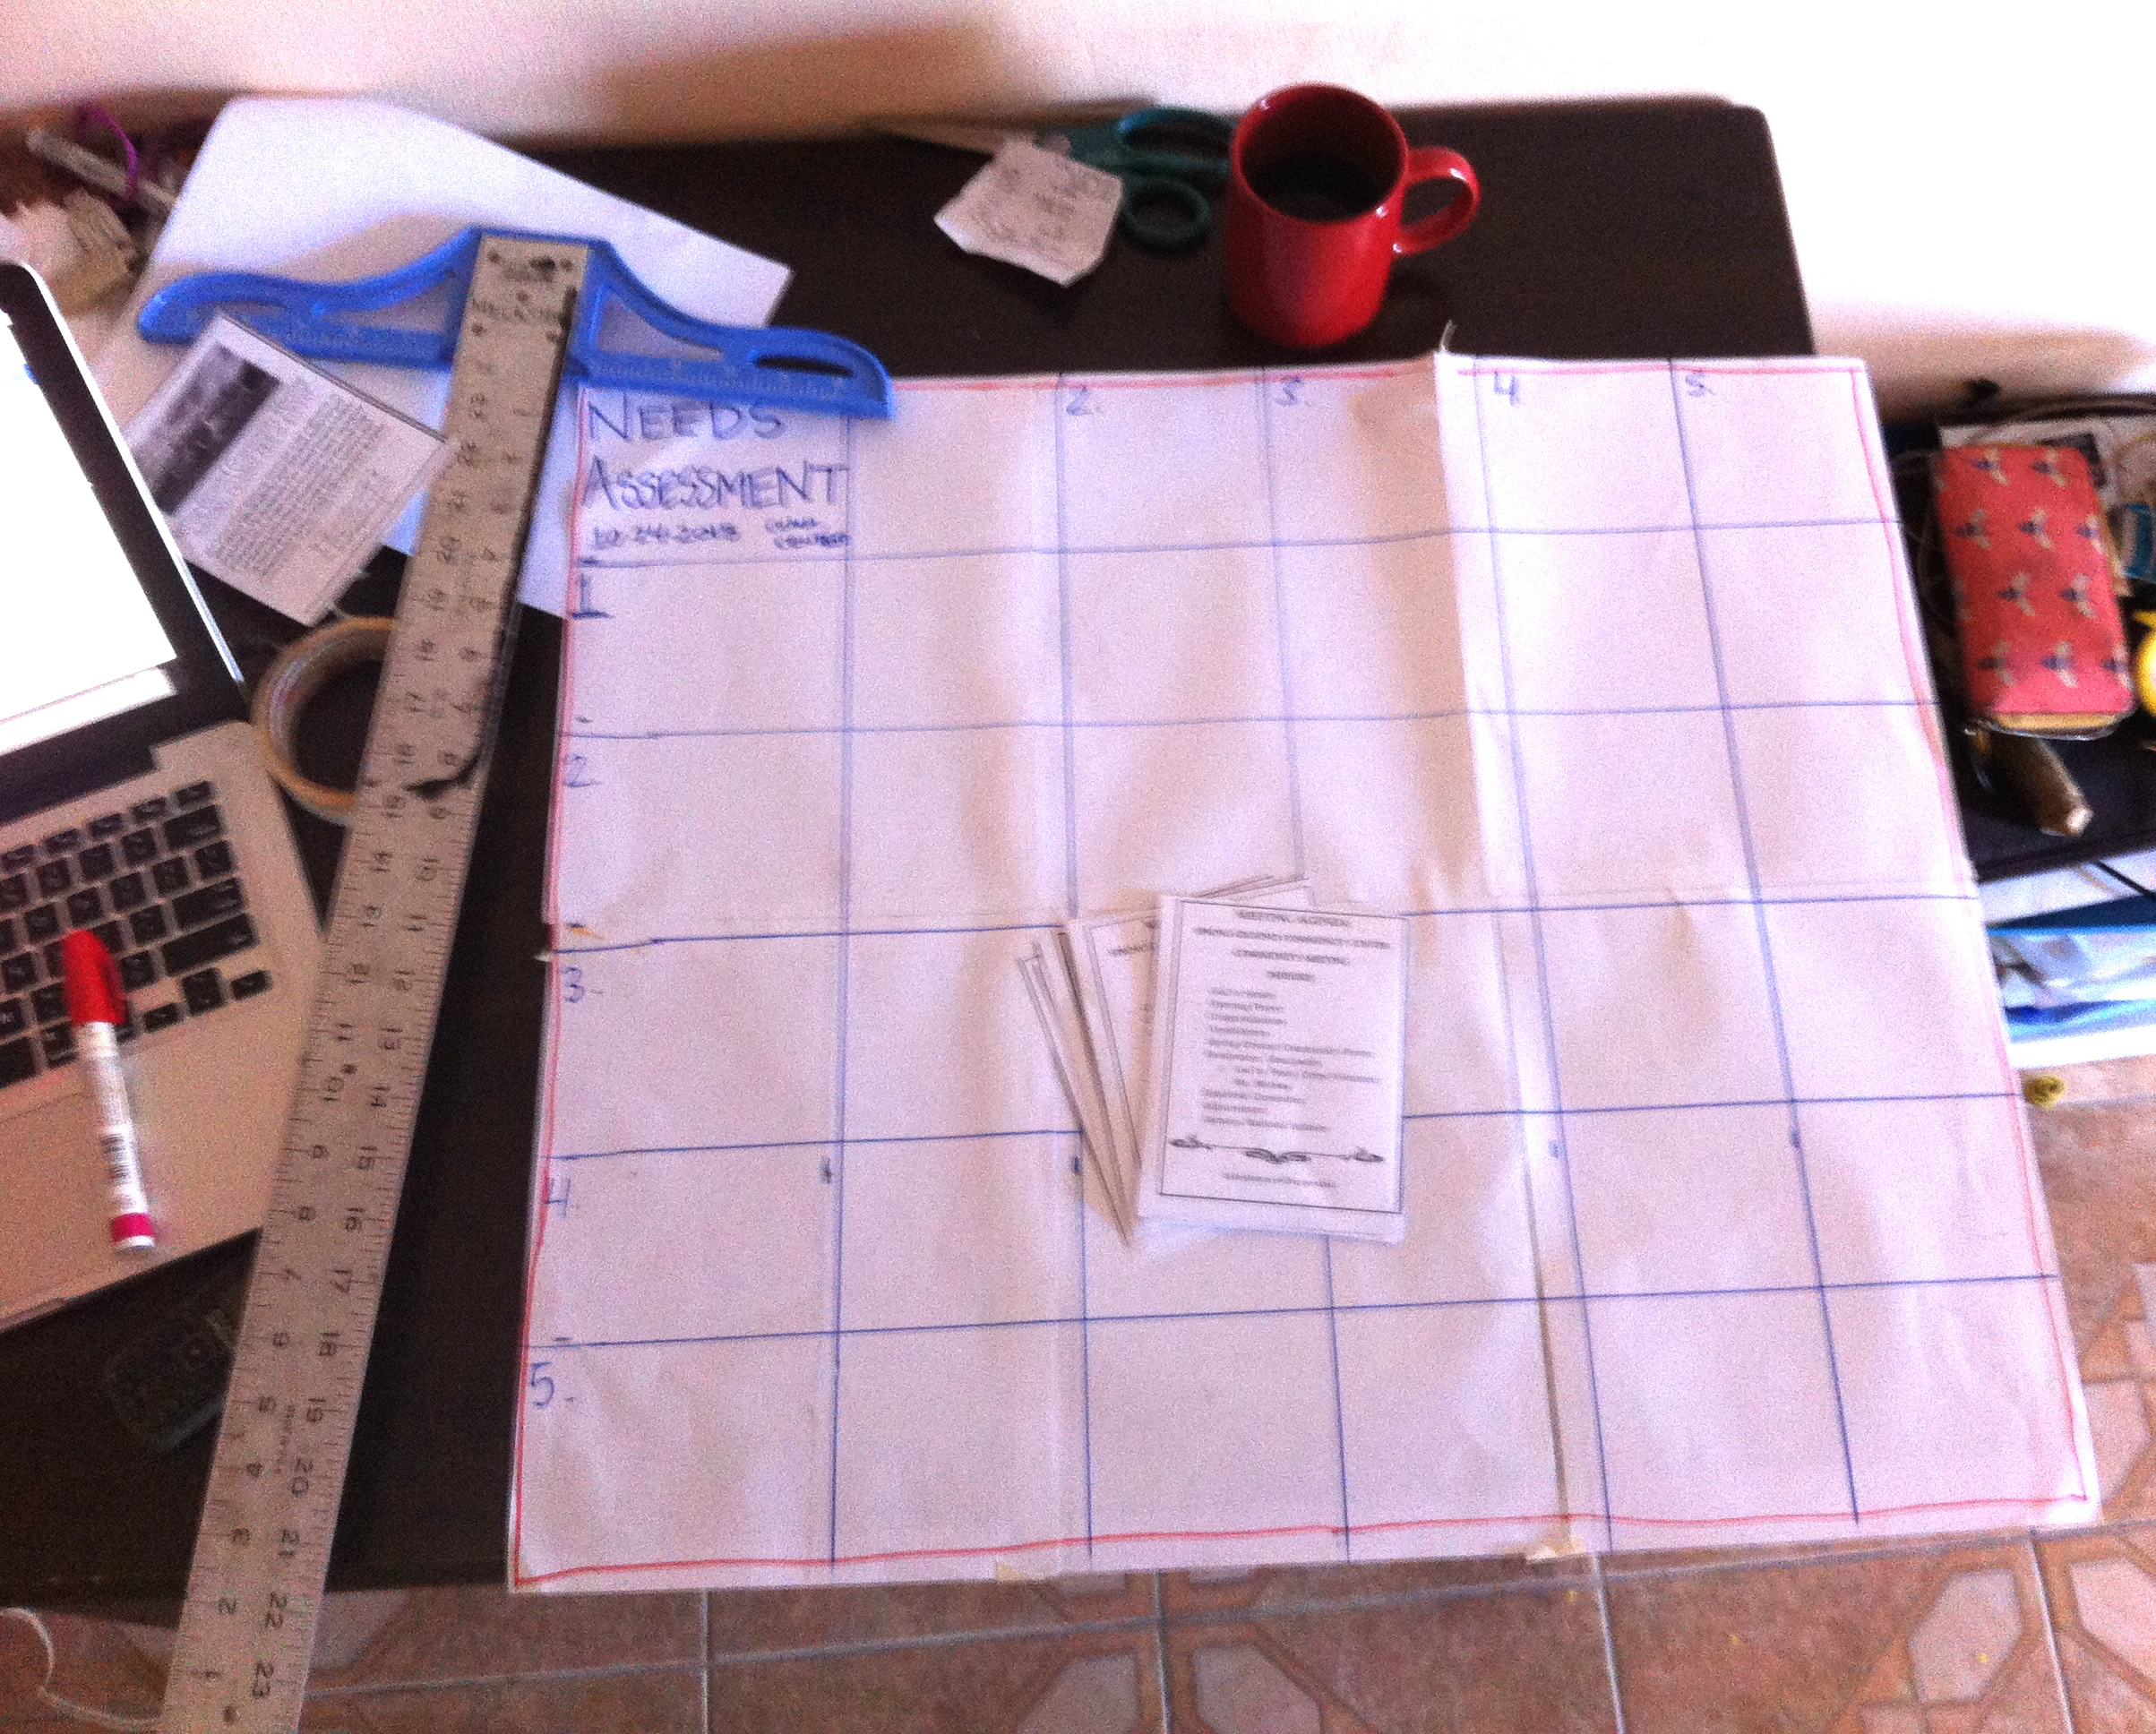 Meeting agendas and pre-prepped needs assessment matrix. Oh, and a big mug of black coffee.